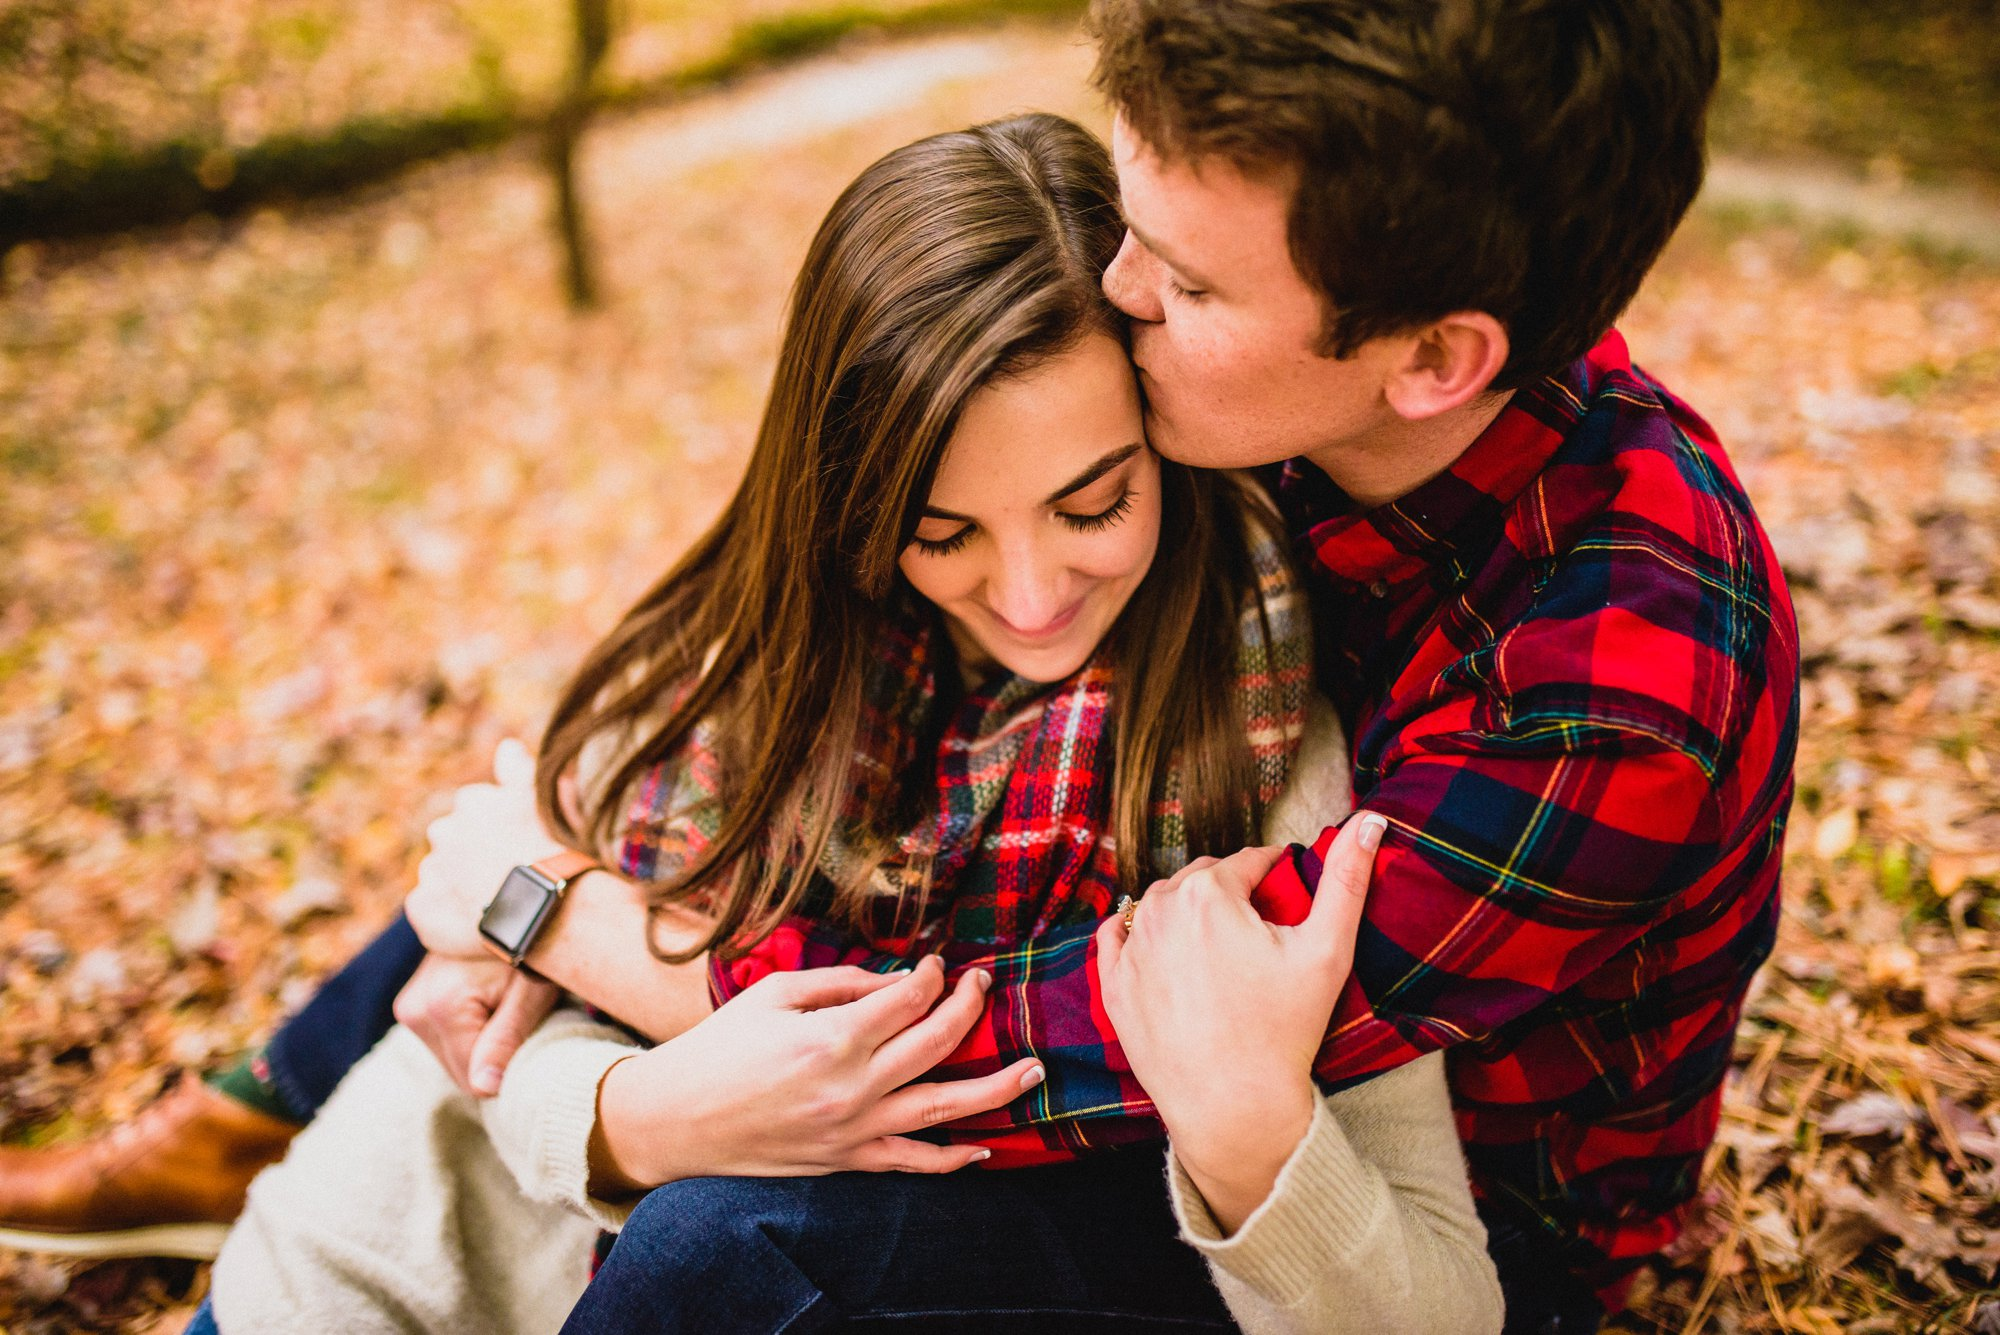 engagement-photography-88-love-stories-28.jpg